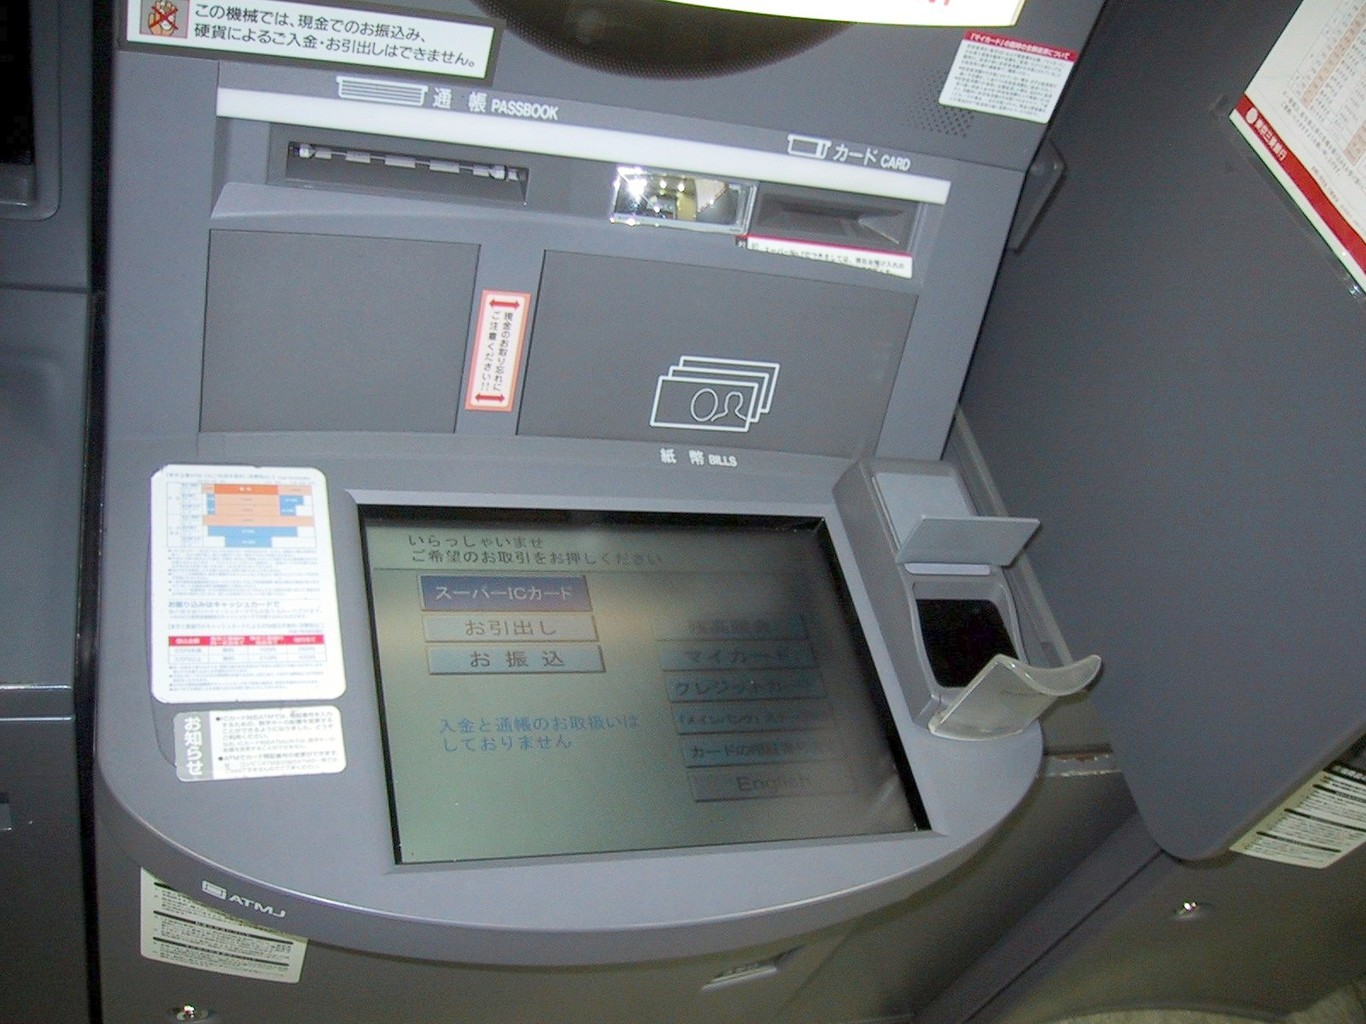 An ATM in Japan has a palm scanner, just to the right of the main display screen, to verify users' identities. - Image Credit: Chris 73 , CC BY-SA